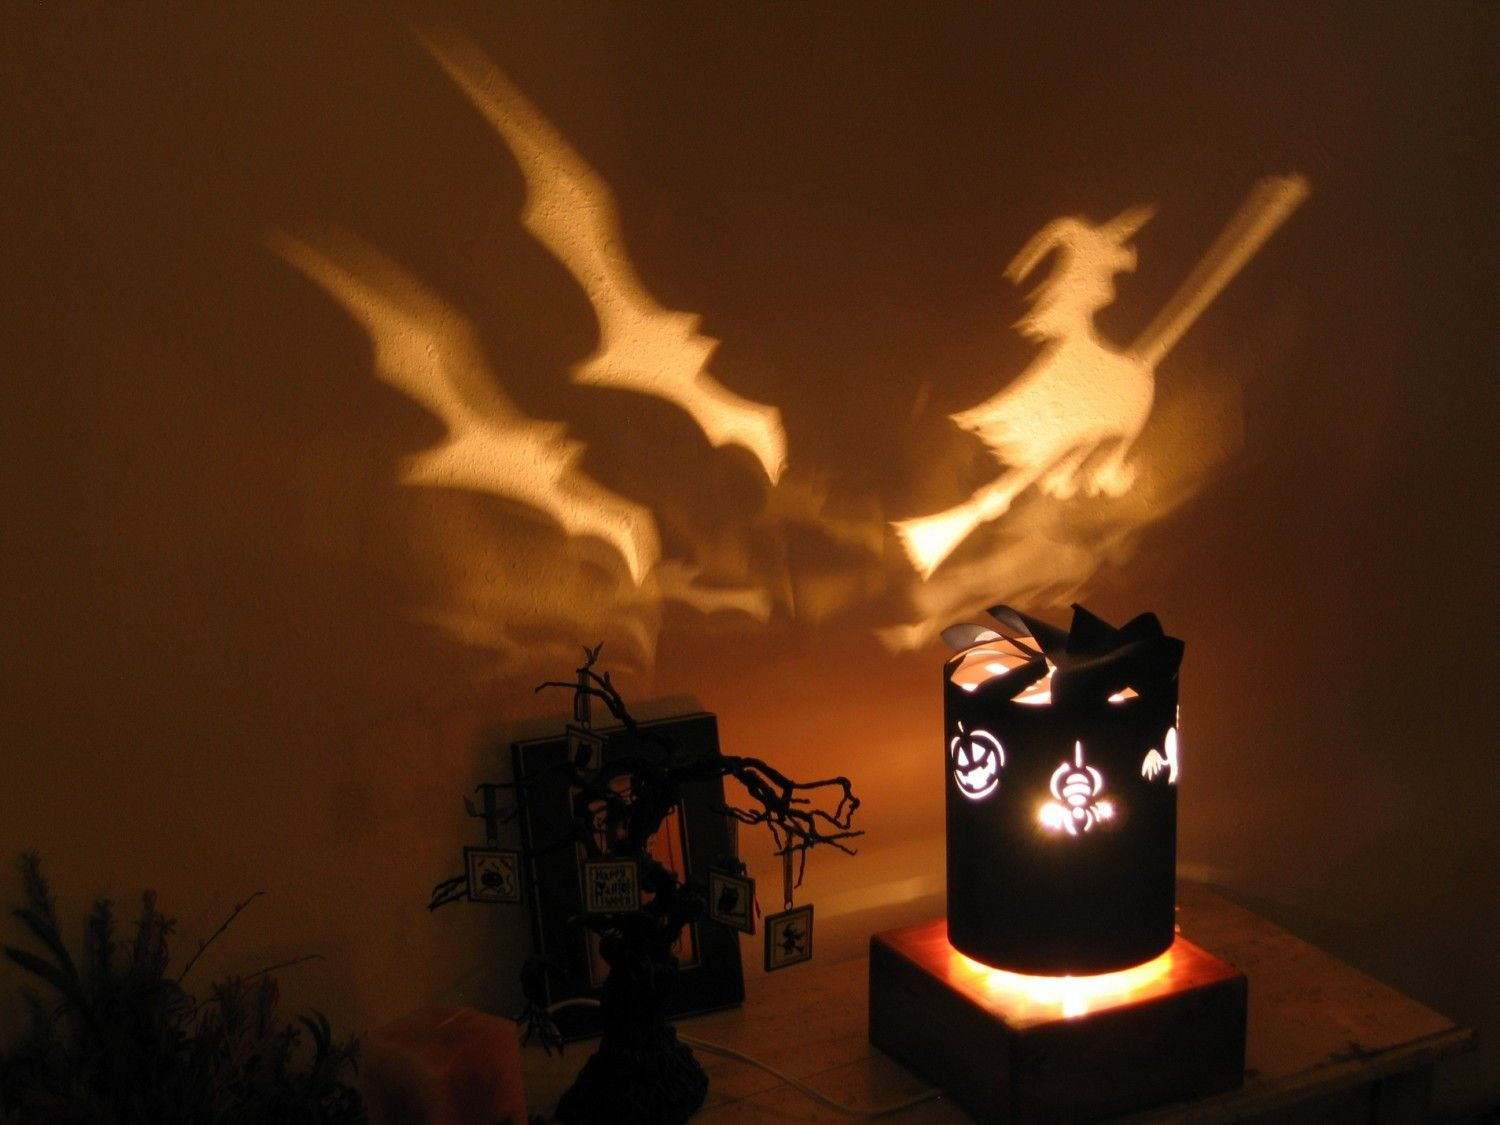 Spinning Lamp Shade Make With Fish And Waves For Underwater Feel Night Light Lamp Diy Lamp Shade